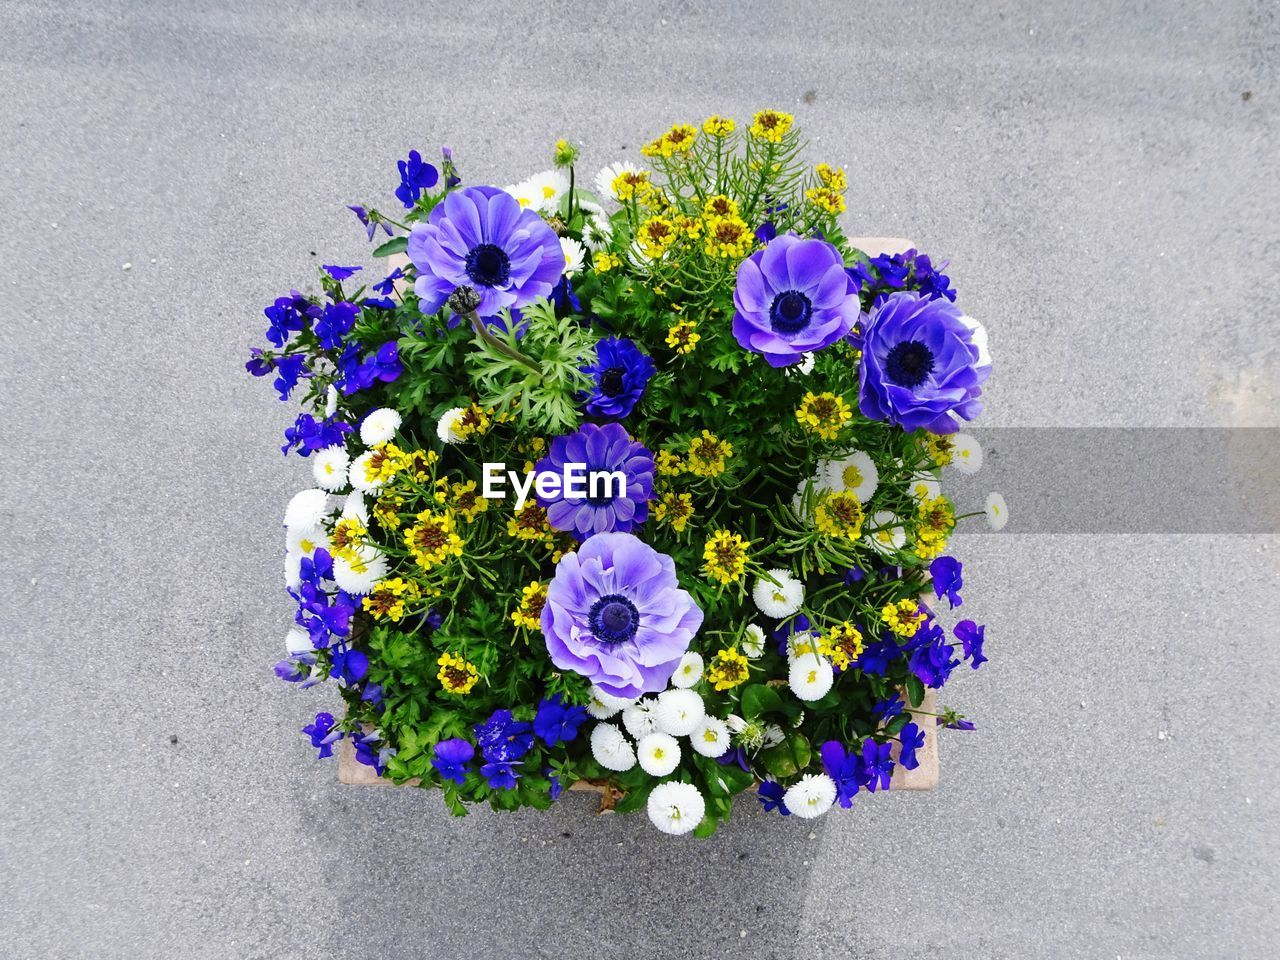 flowering plant, flower, freshness, fragility, vulnerability, plant, beauty in nature, petal, nature, flower head, high angle view, purple, no people, close-up, directly above, blue, choice, day, inflorescence, outdoors, flower arrangement, bouquet, bunch of flowers, concrete